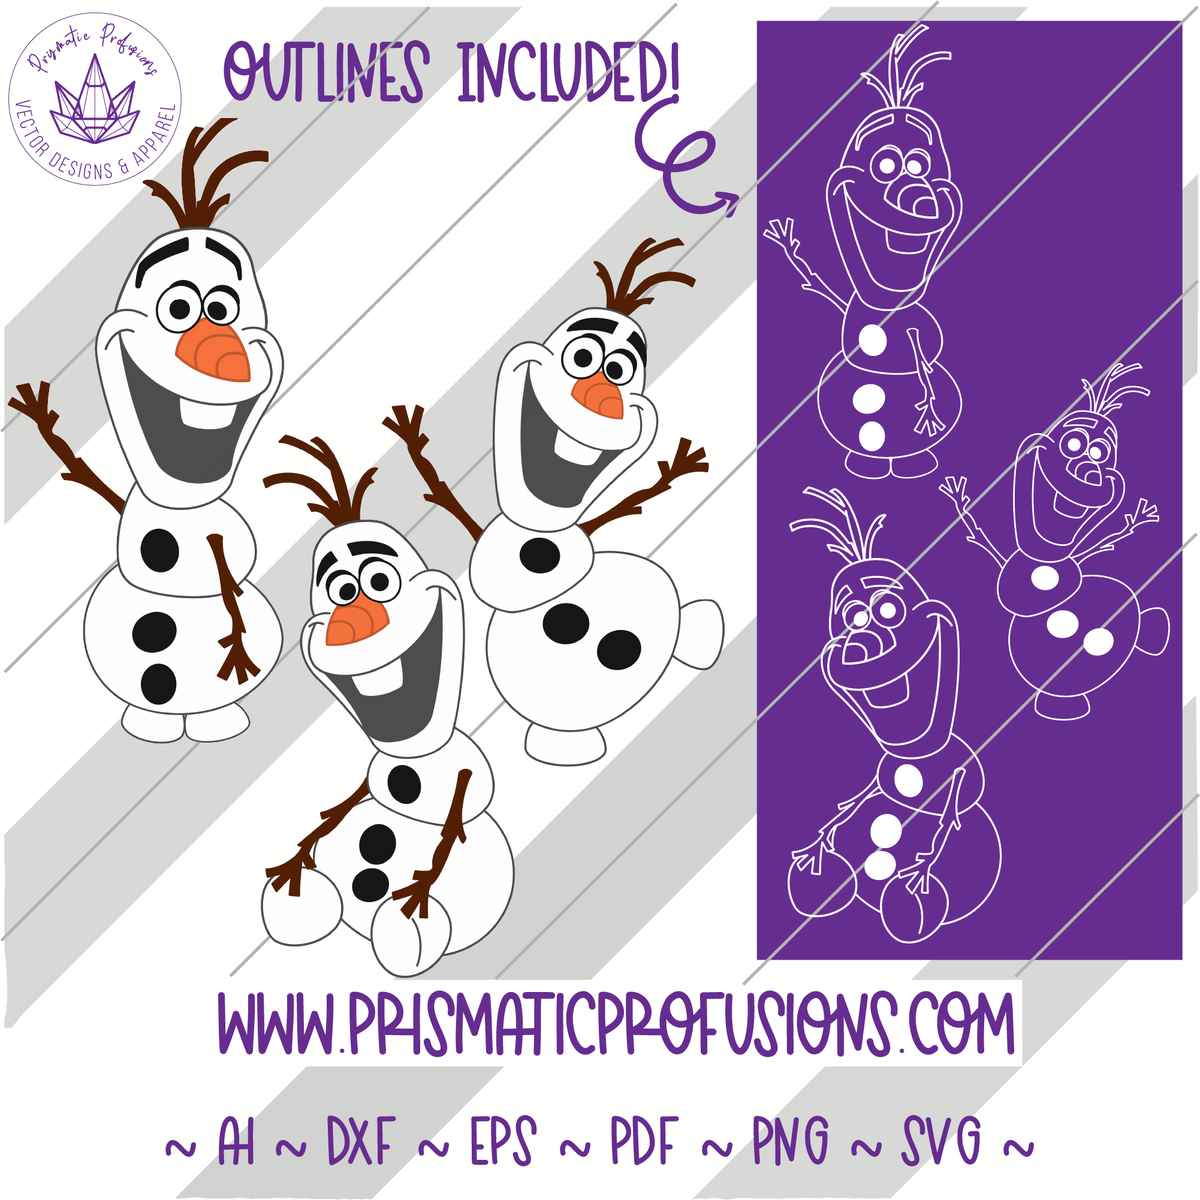 Who doesn't love a some Olaf? We all love summer too! #Olaf, #OlafSVG, #Frozen, #FrozenSVG, #OlafClipArt, #FrozenClipArt, #OlafBirthday, #OlafShirt, #FrozenBirthday, #FrozenShirt, #OlafCutFile, #FrozenCutFile, #OlafOutline, Cut File, PNG, #PrismaticProfusionspic.twitter.com/75mVuOTyLO